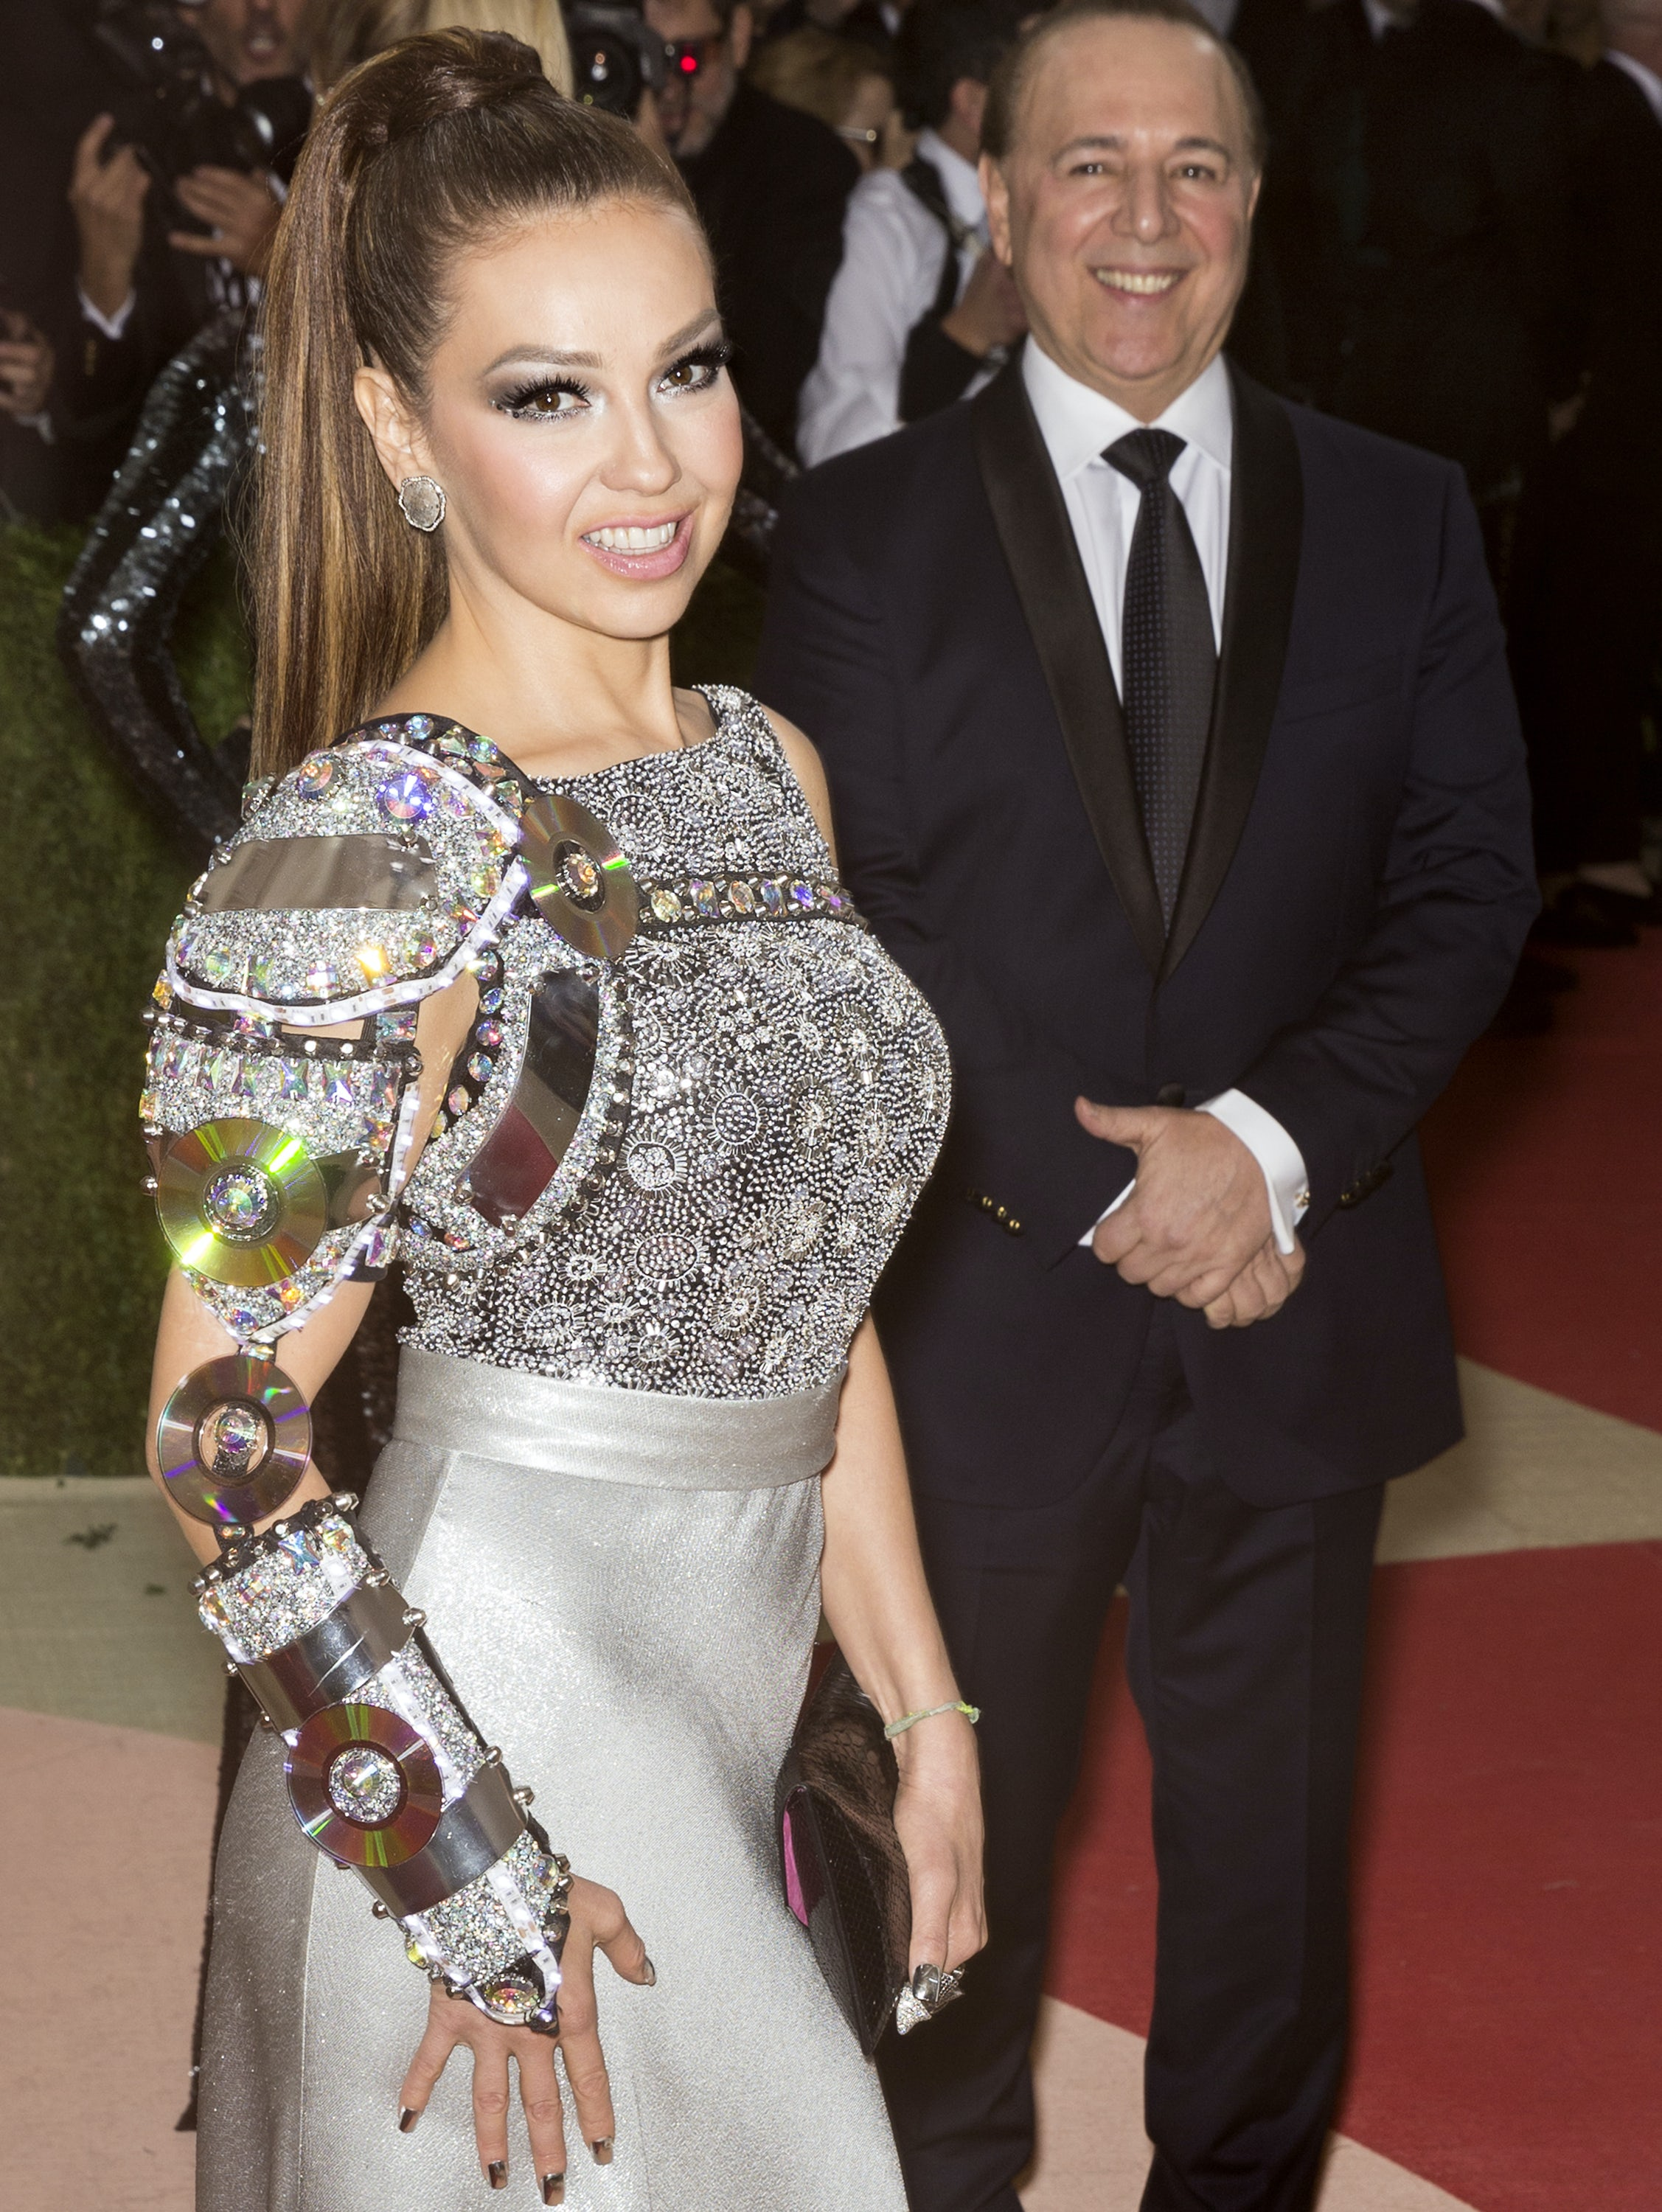 Singer Thalia at the Met Gala in 2016 | Source: Shutterstock